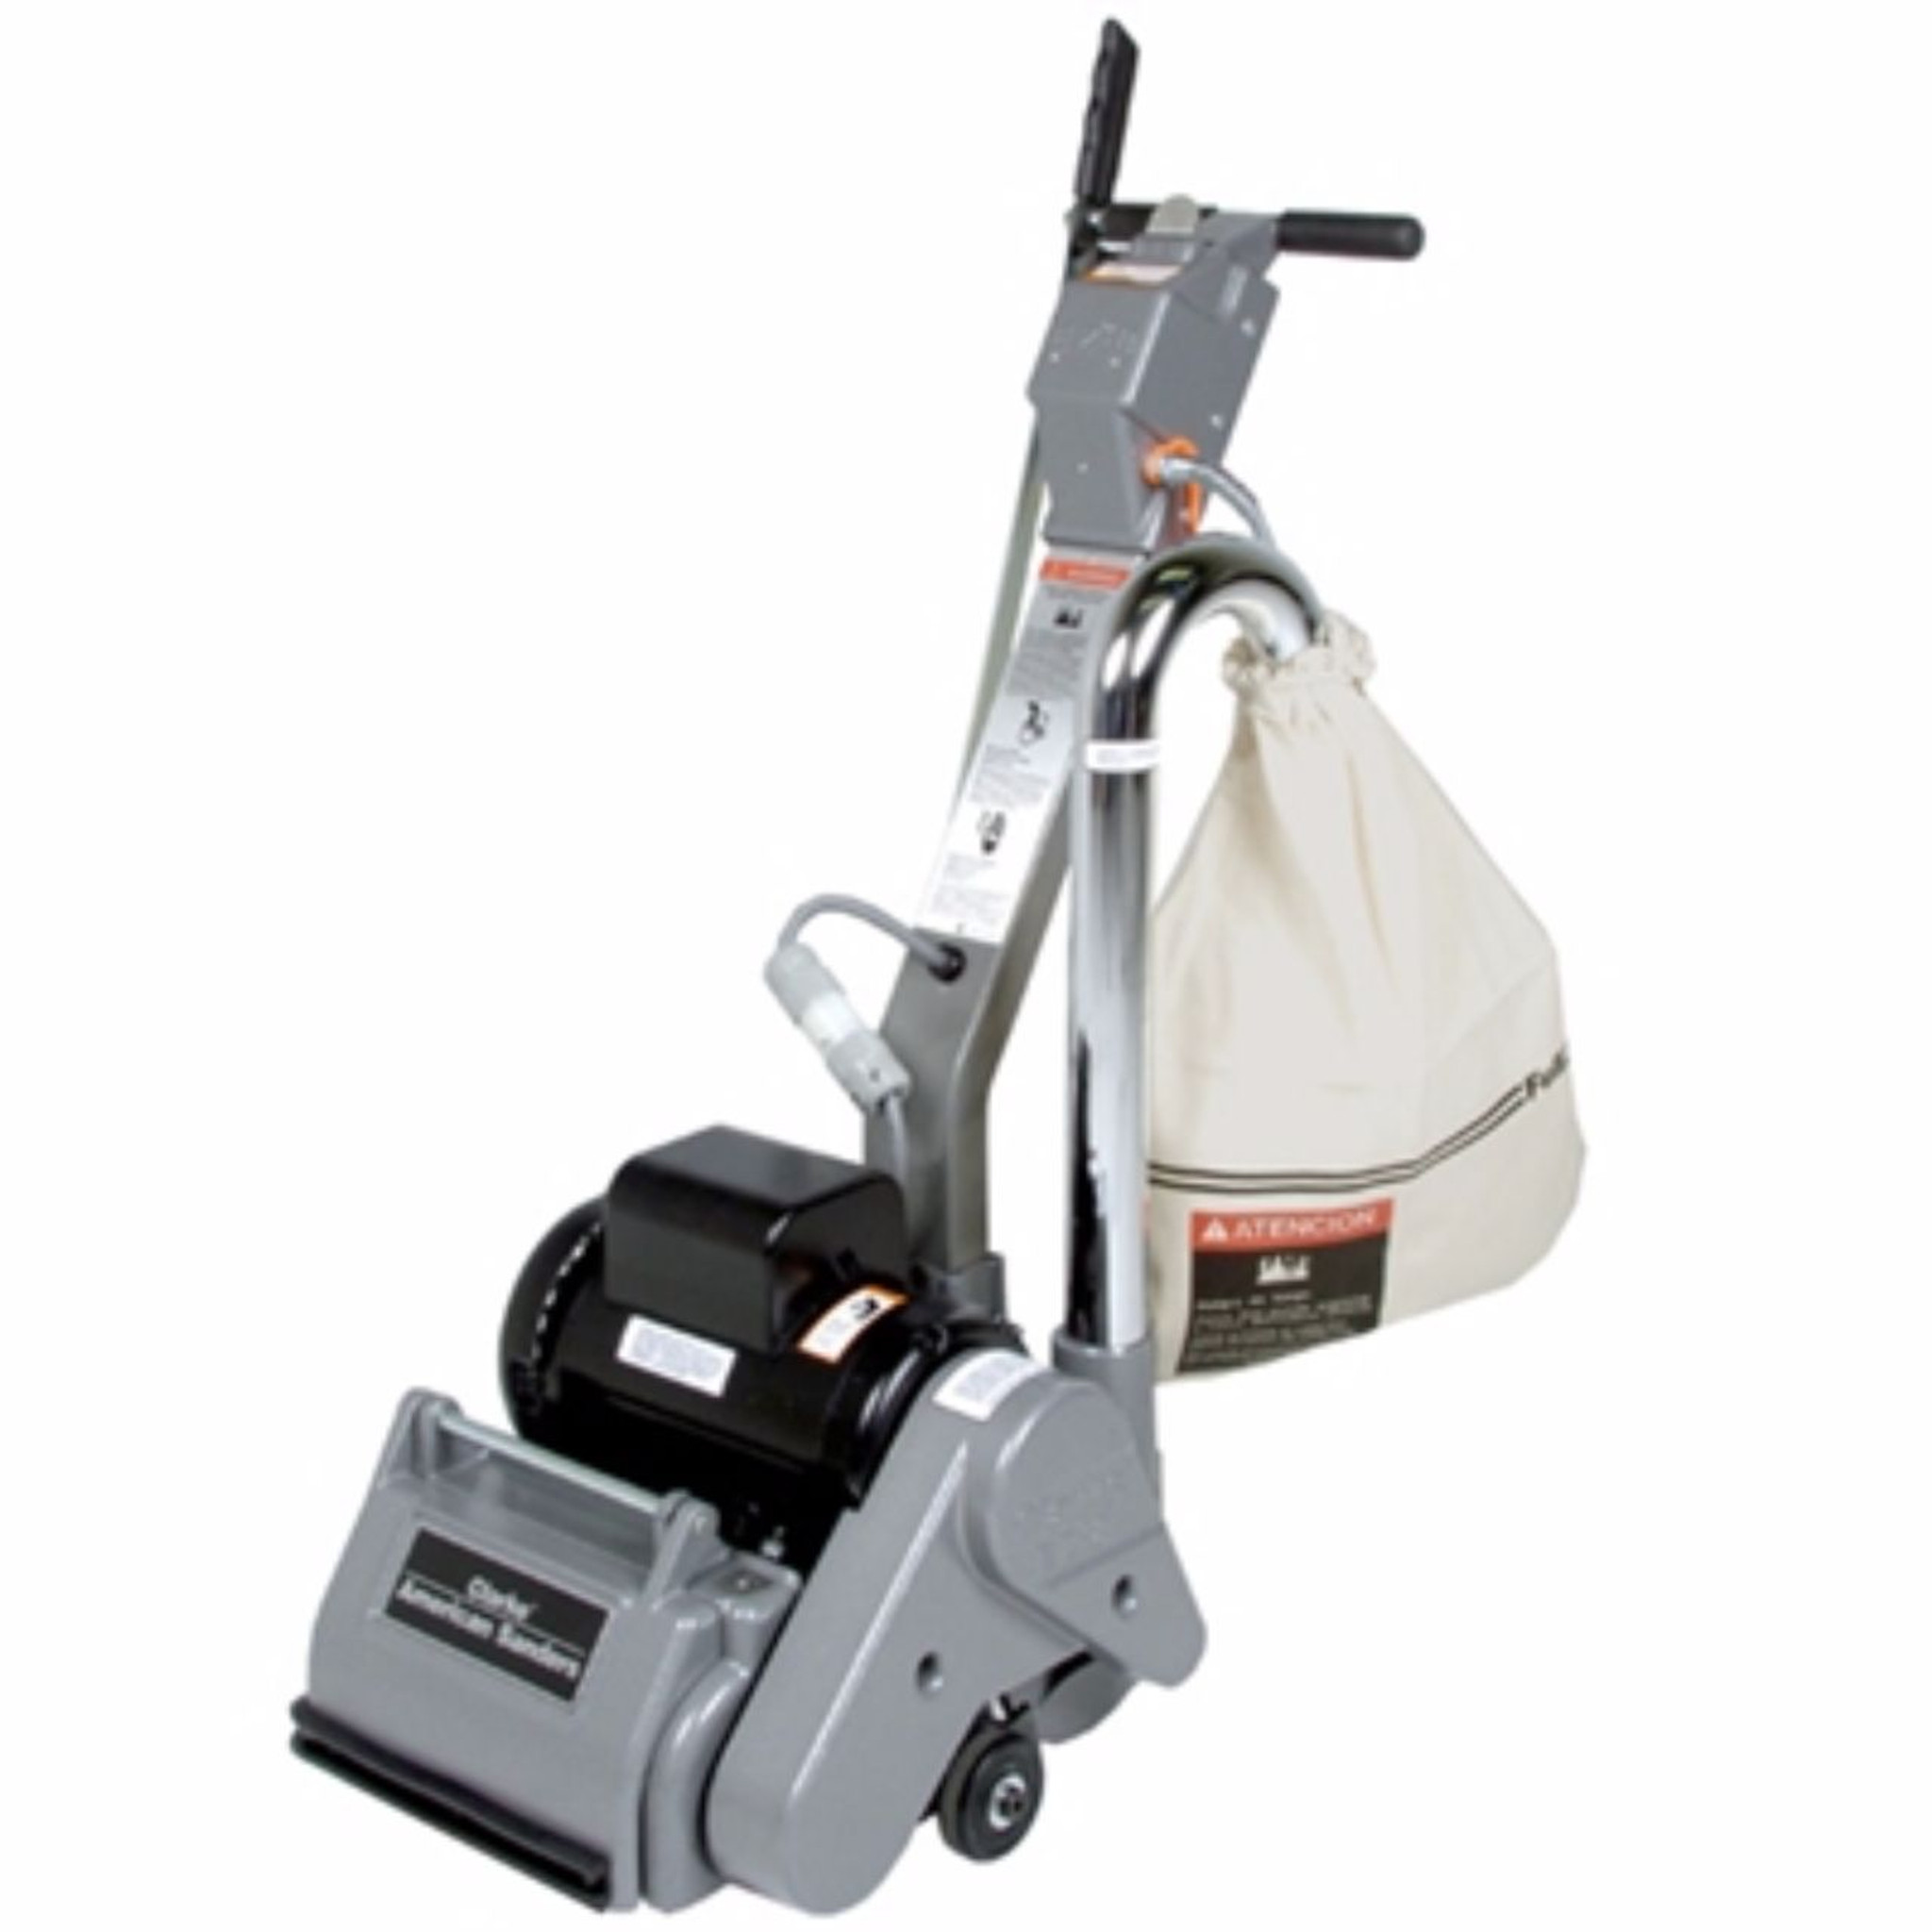 Drum Floor Sander Rental Starting At Abcwnyrental